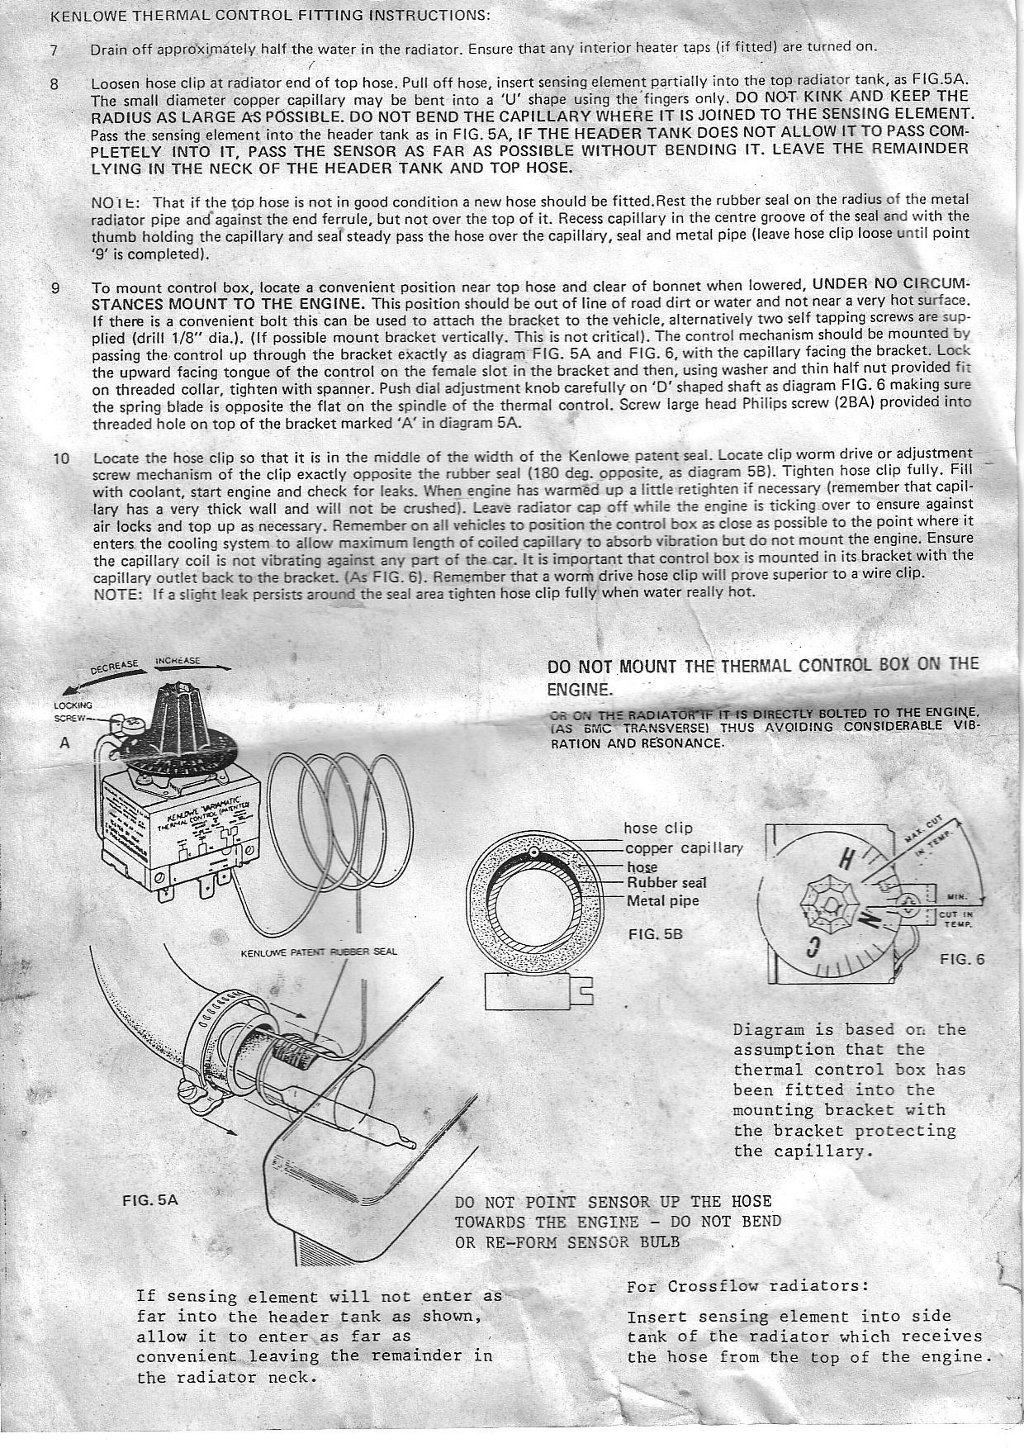 Wiring Diagram Kenlowe Fan : How to fitting a kenlowe unifan electric fan classic